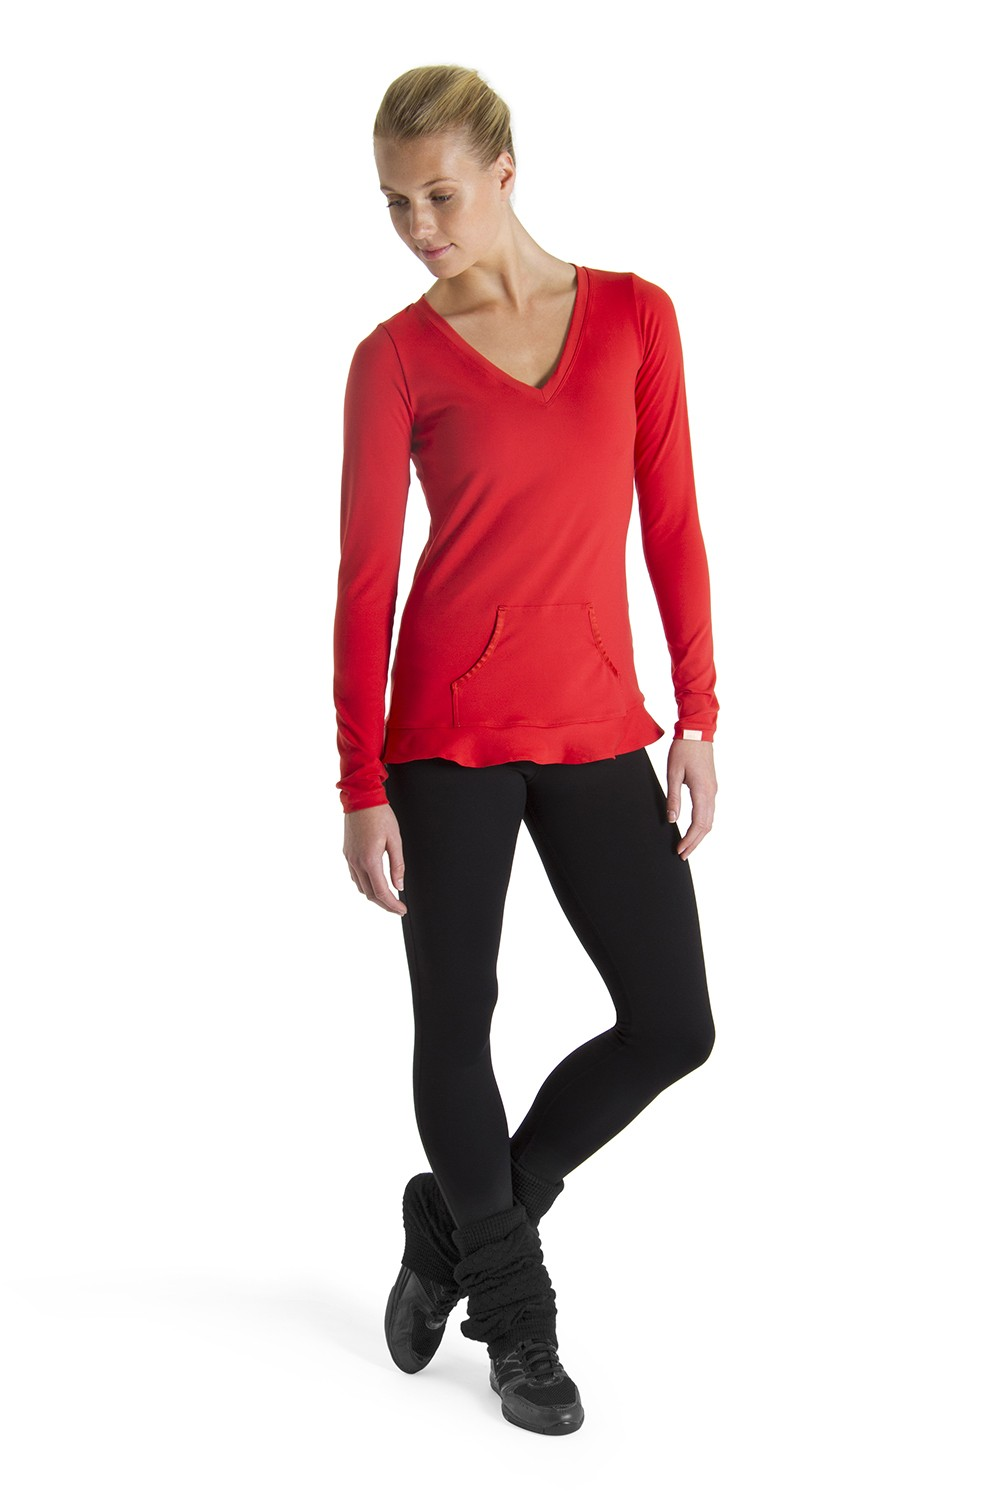 Queen Long Sleeved Top Women's Tops